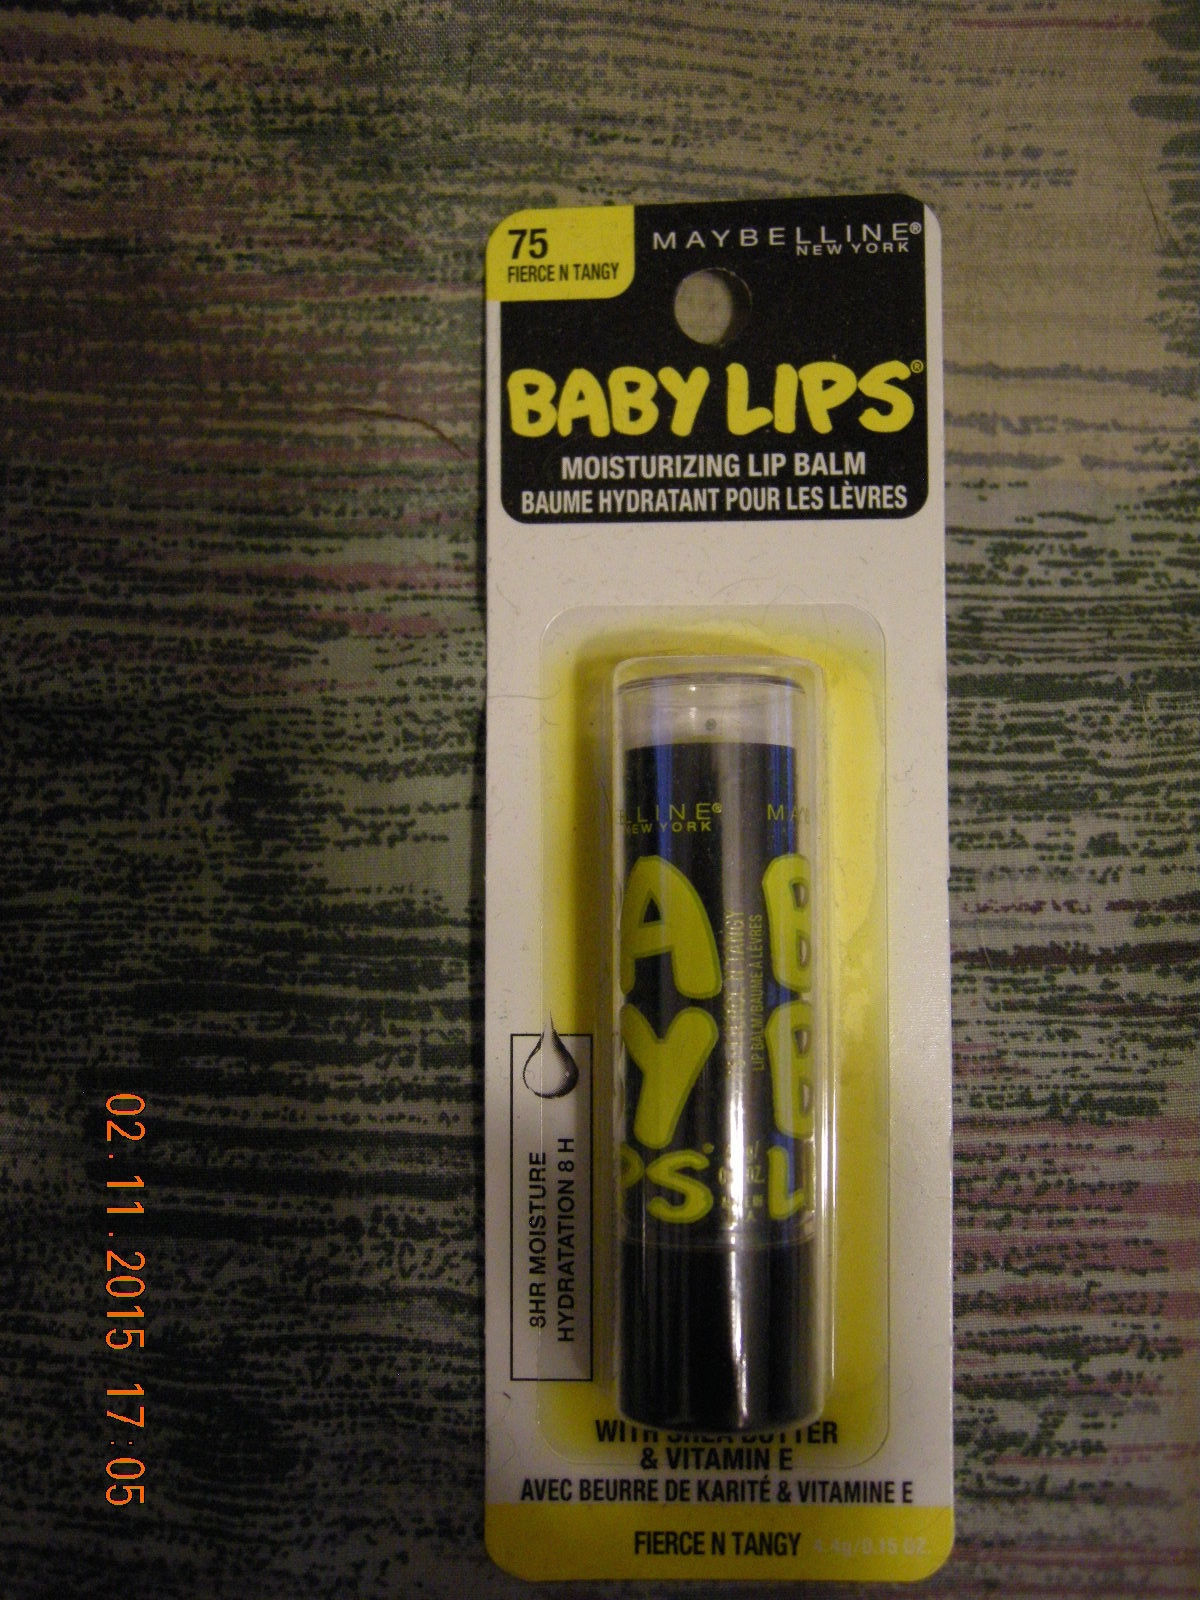 MAYBELLINE NEW YORK BABY LIPS LIP BALM NEW ON CARD FIERCE & TANGY 75 SHEA BUTTER